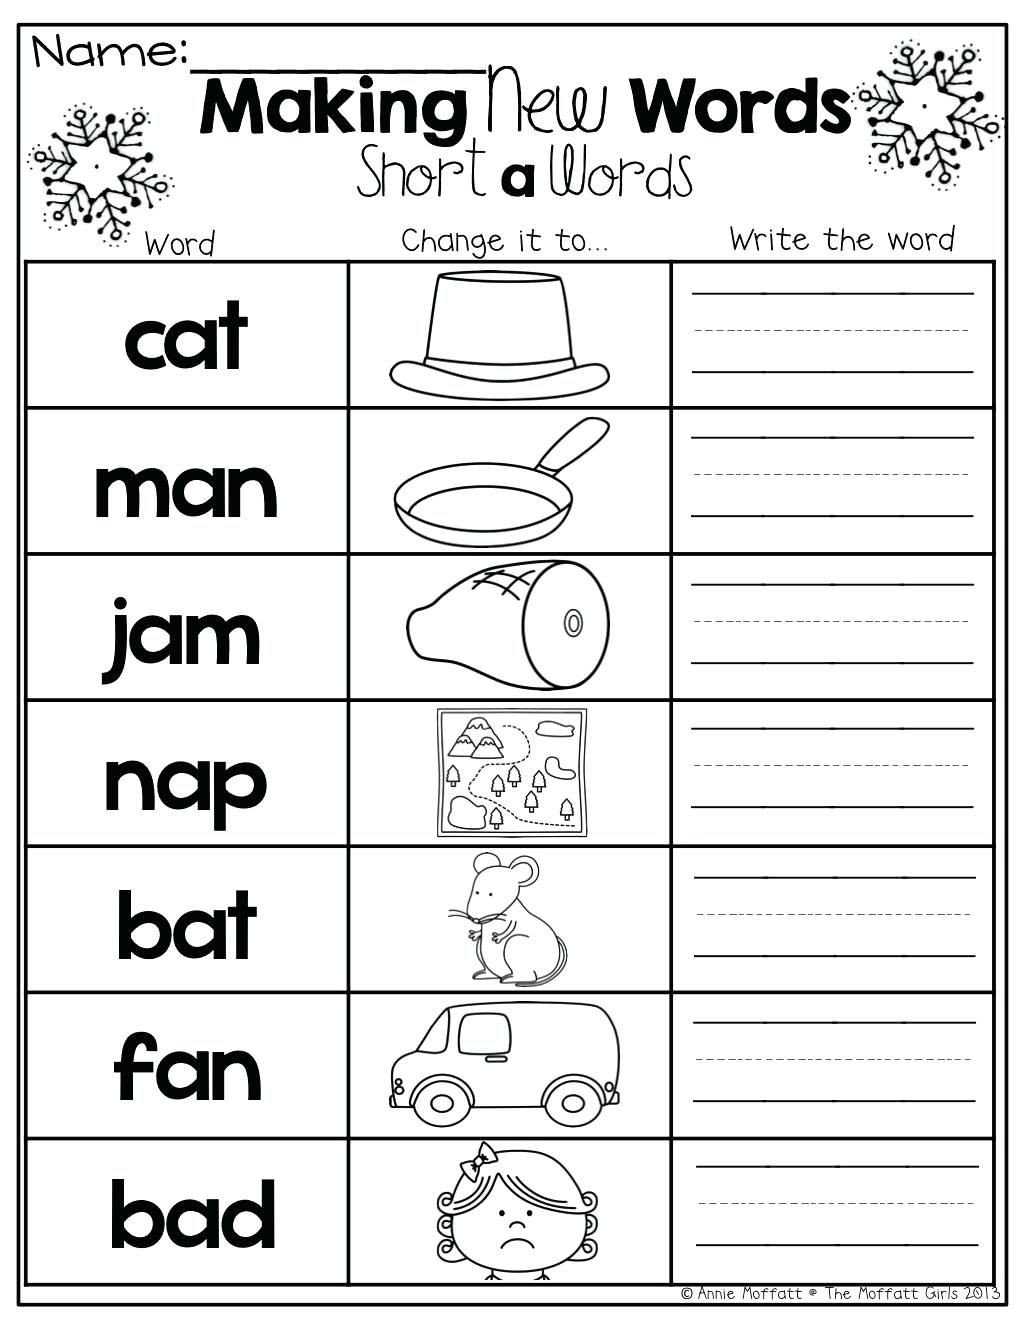 Ending sound Worksheets Free Beginning Middle End Worksheets Kindergarten and Ending